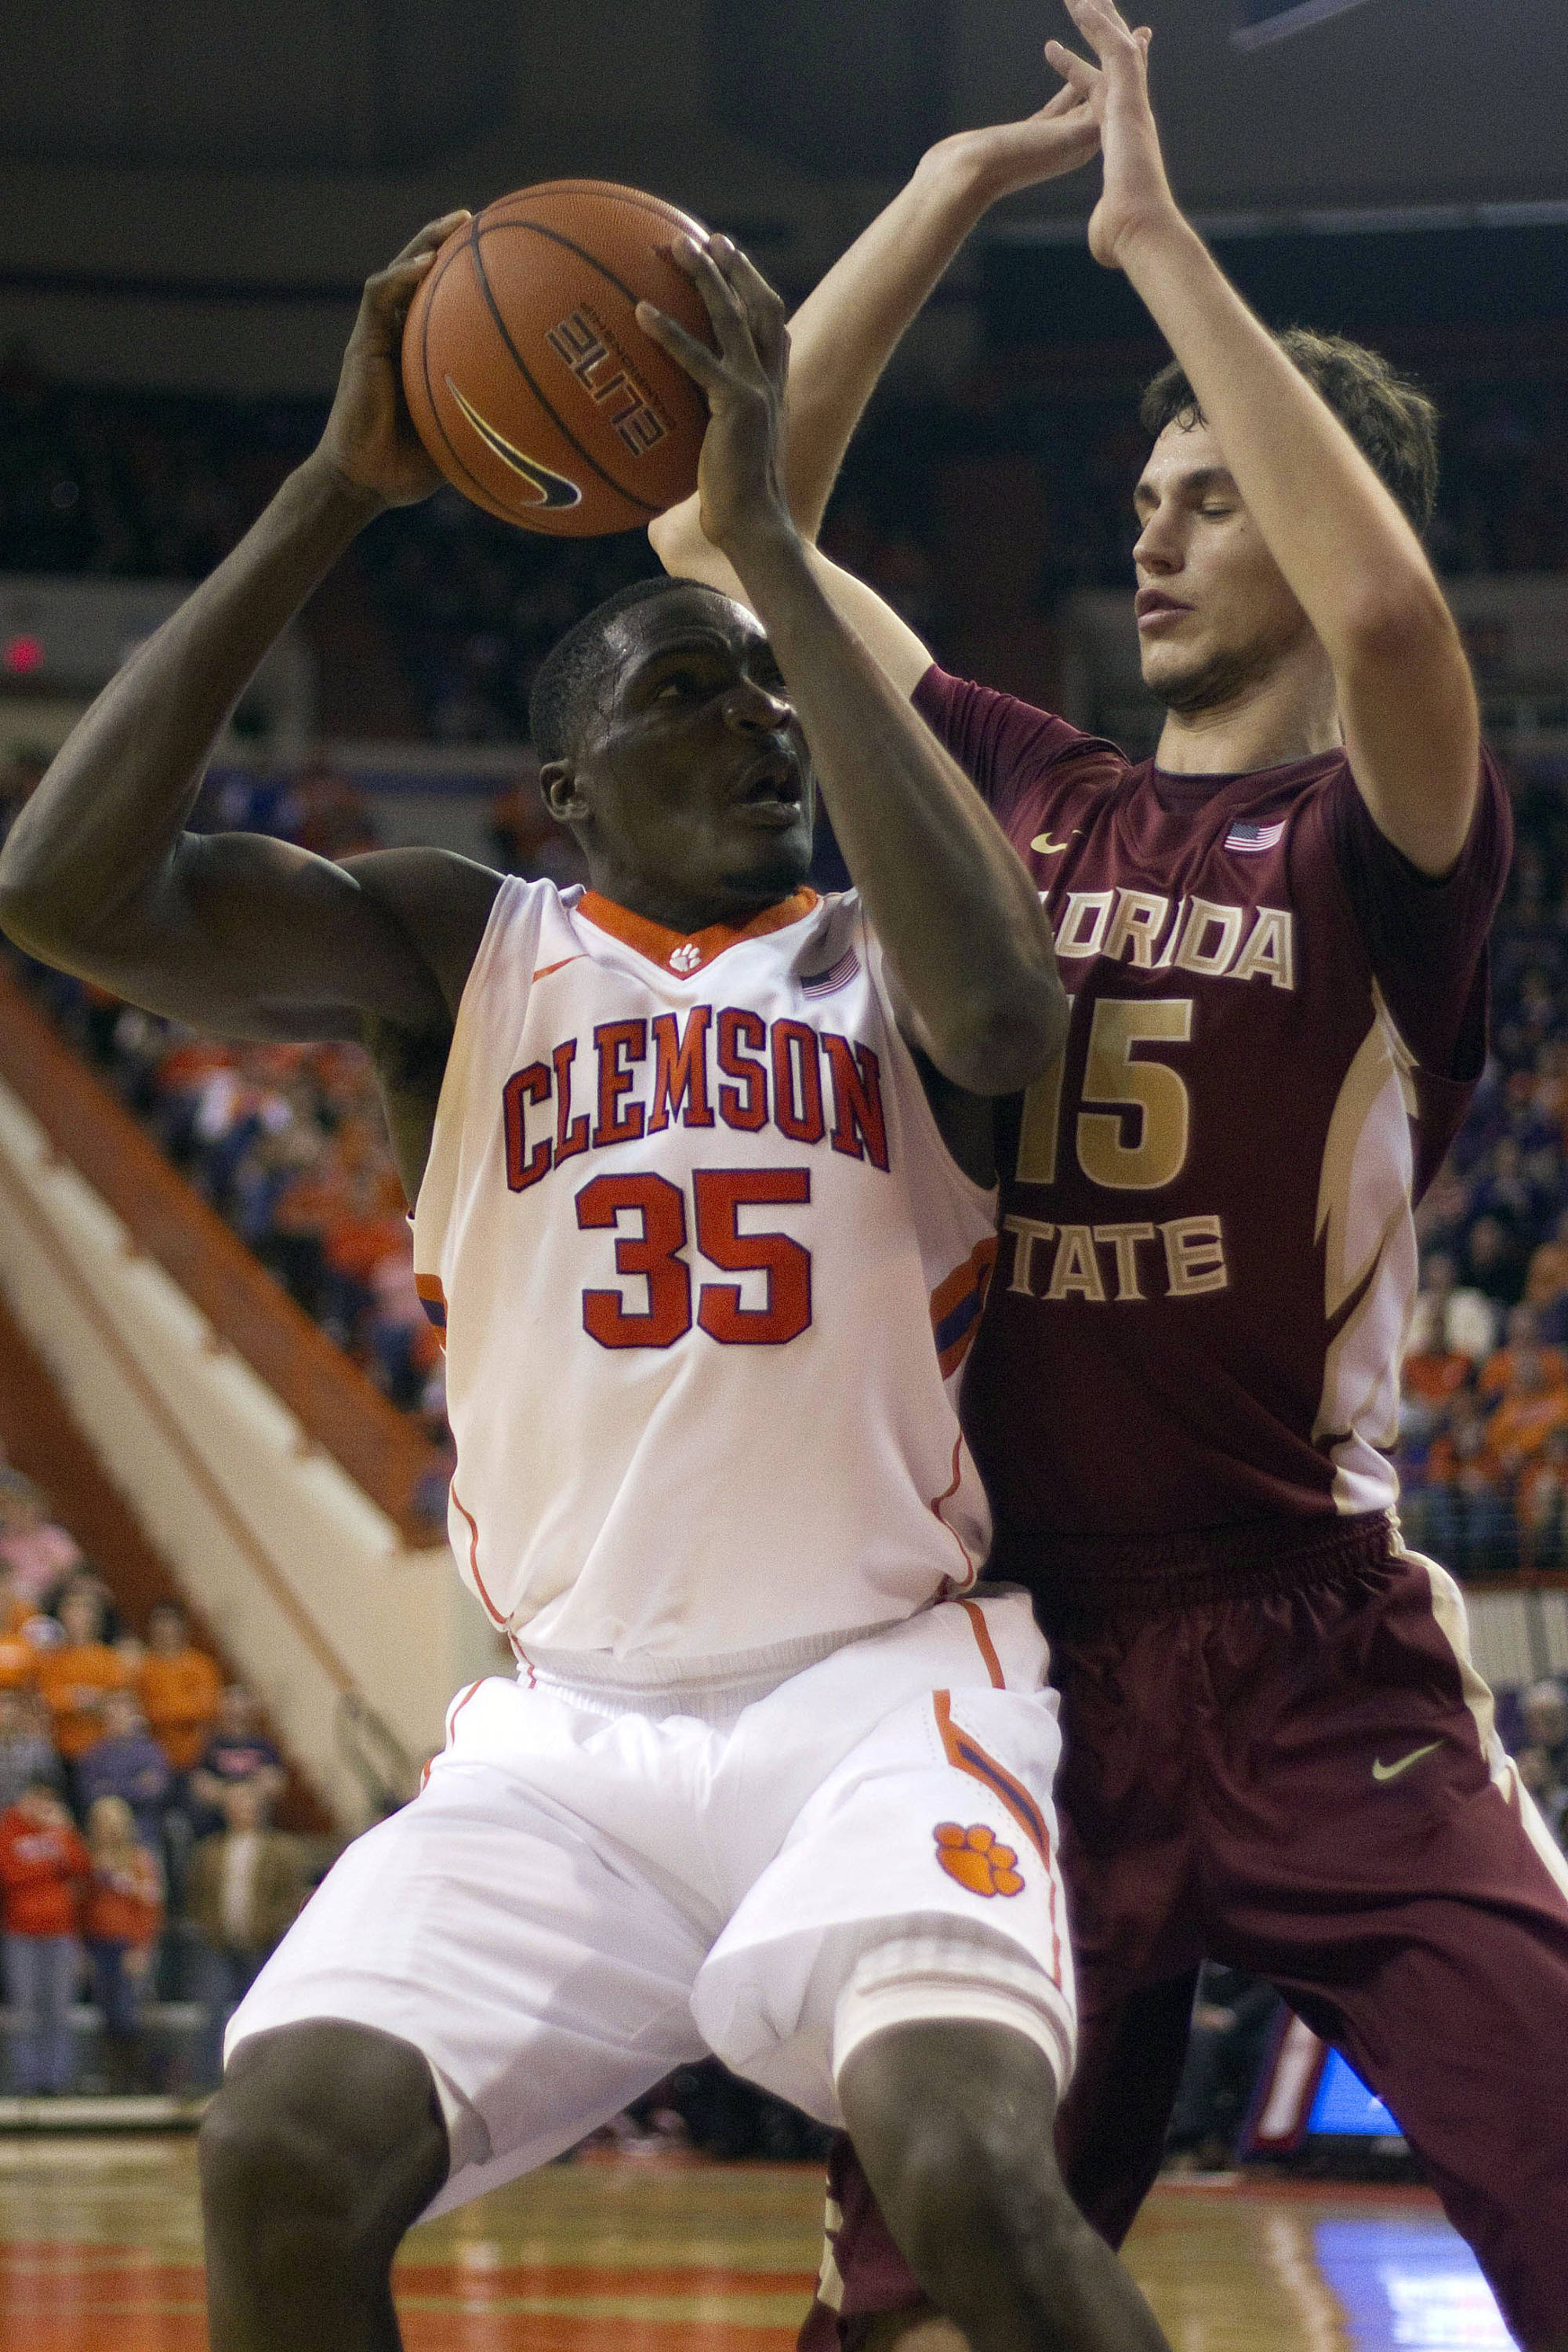 Jan 9, 2014; Clemson, SC, USA; Clemson Tigers center Landry Nnoko (35) drives to the basket while being defended by Florida State Seminoles center Boris Bojanovsky (15) during the second half at J.C. Littlejohn Coliseum. Seminoles won 56-41. Mandatory Credit: Joshua S. Kelly-USA TODAY Sports